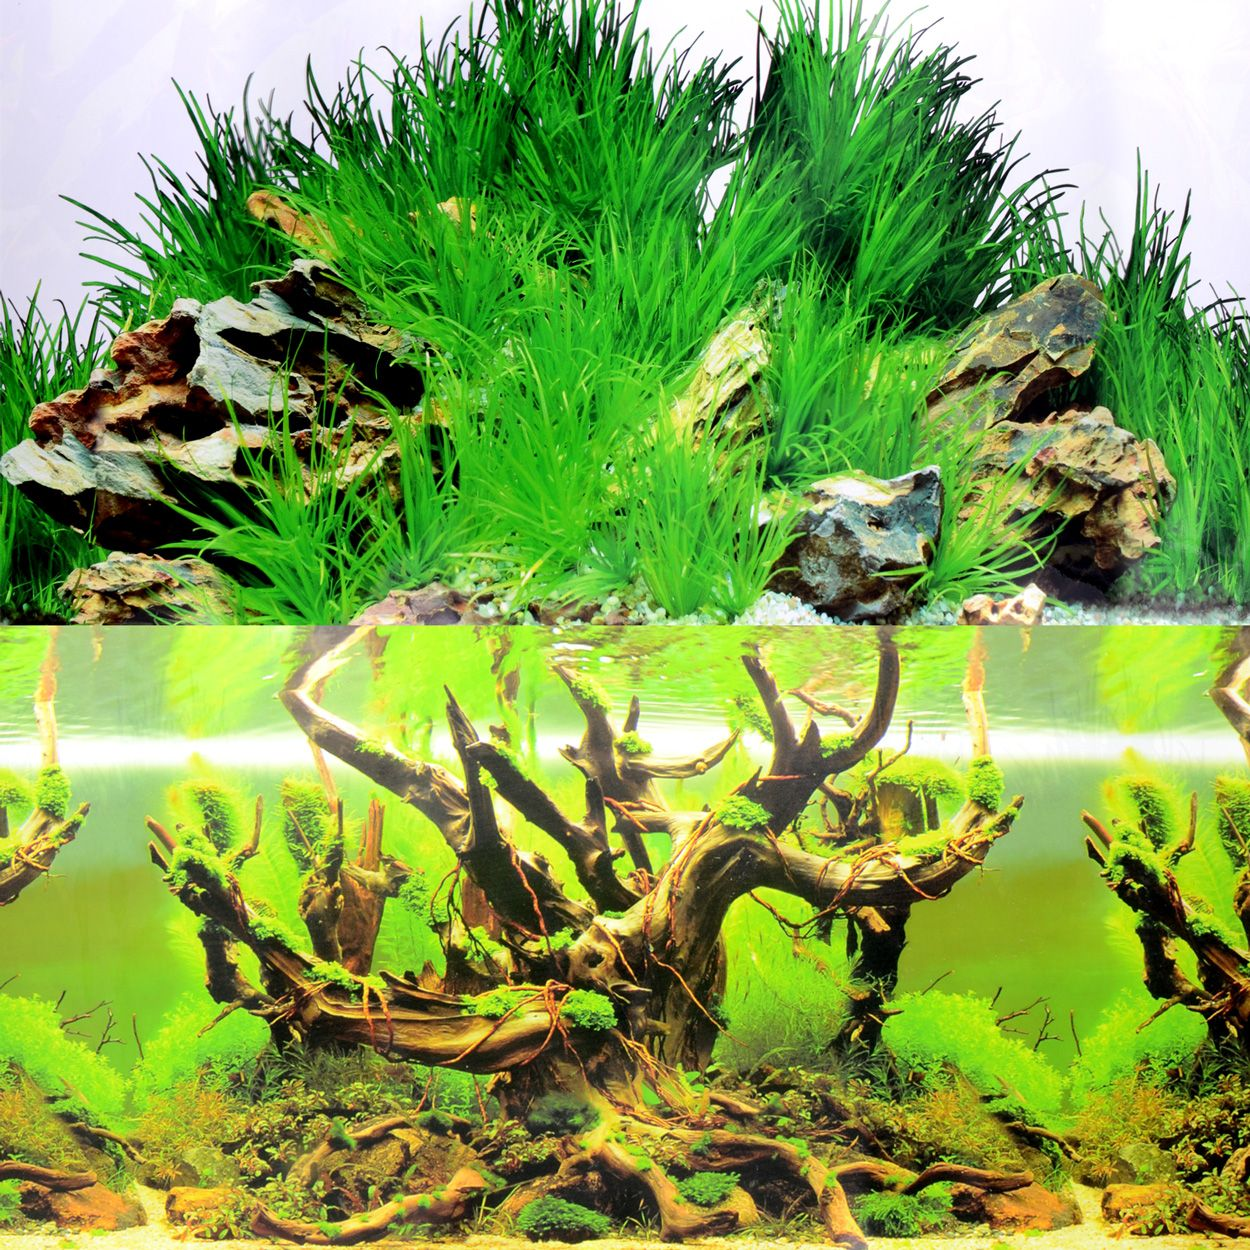 Underwater Treasures Grassy Tree/Grassy Boulder Reversible Background - 20 inch (Sold by the foot)